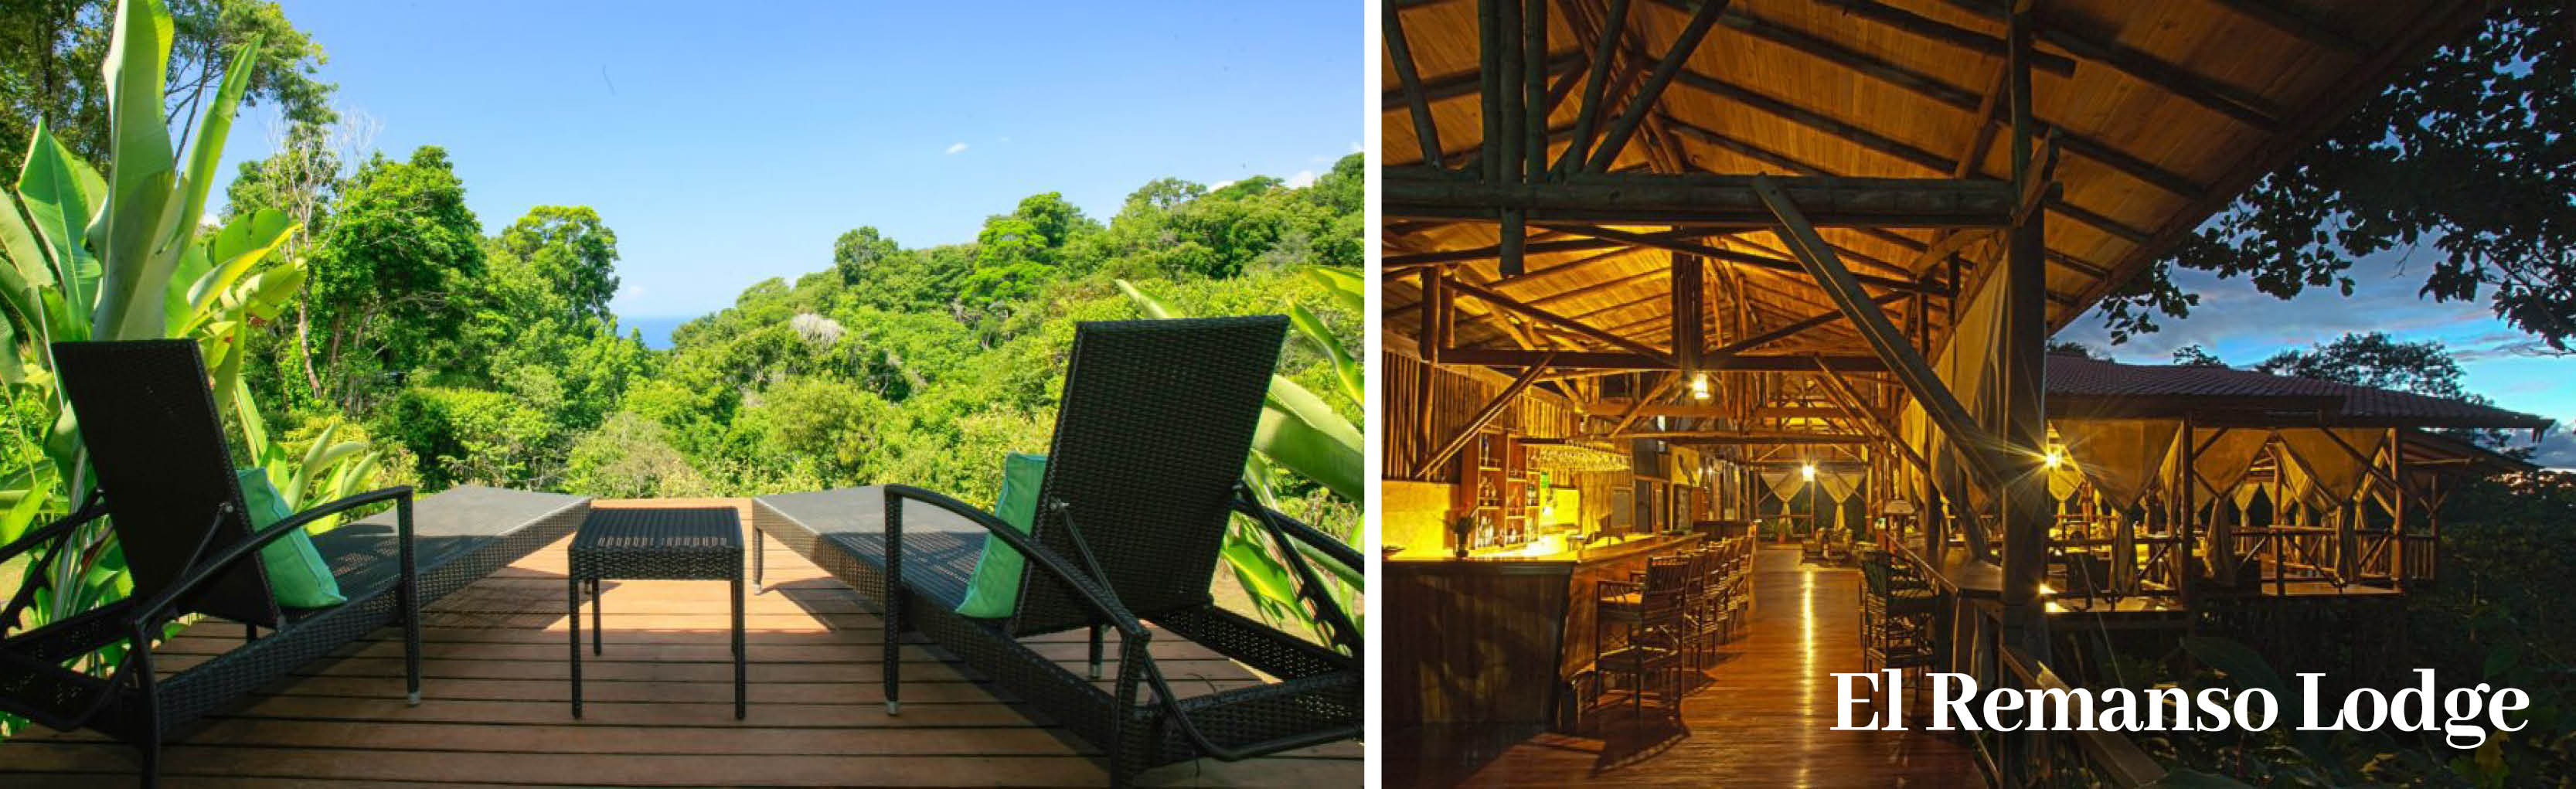 Costa Rica Holiday Offer lodges2